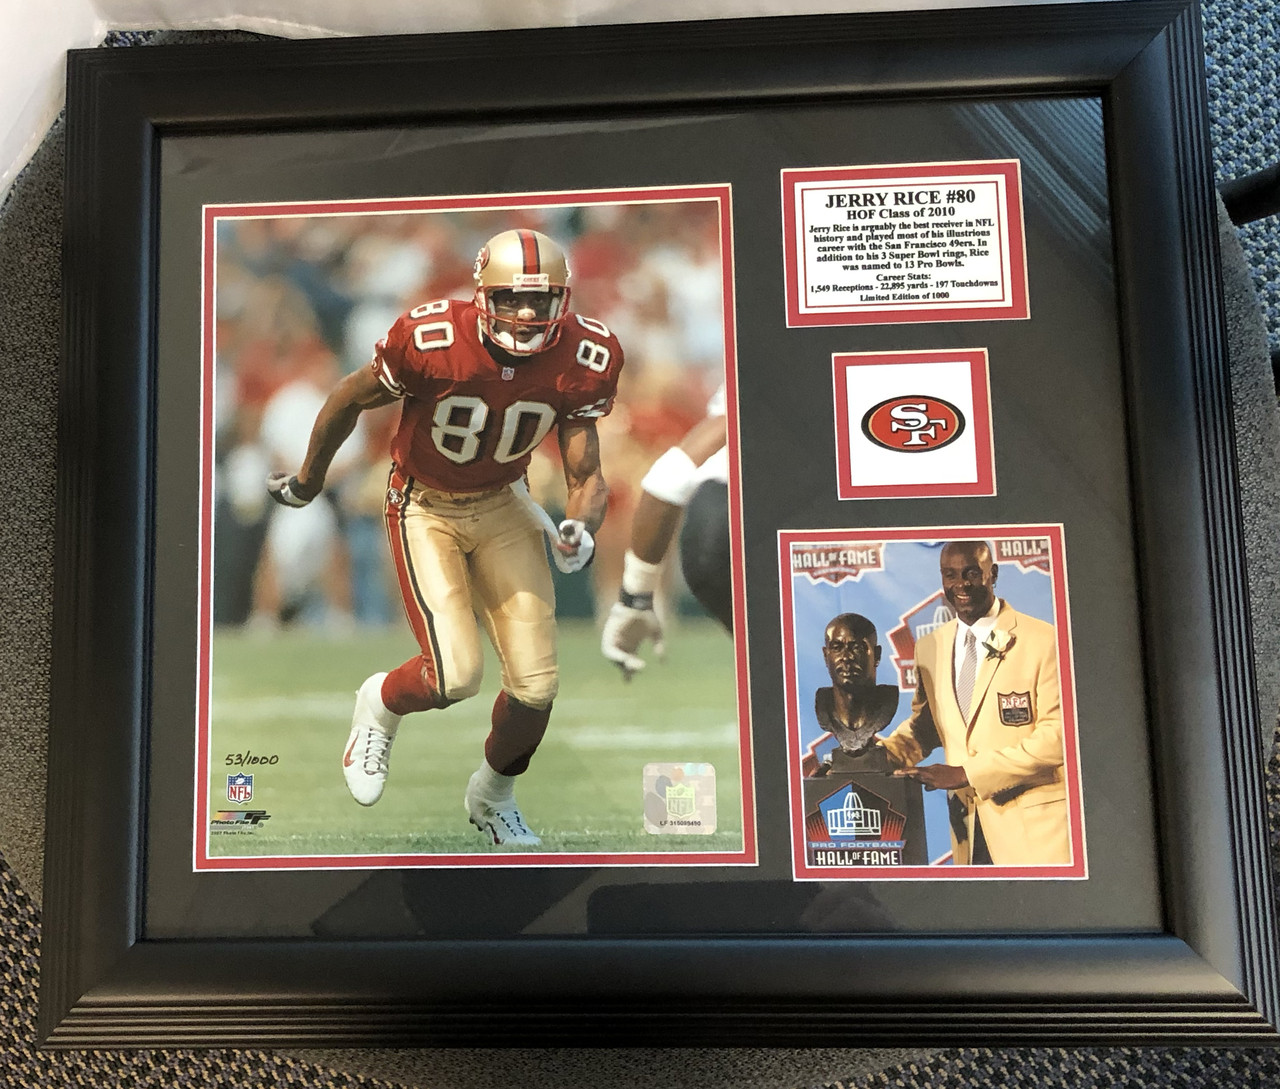 74b56fce677 Jerry Rice HOF Commemorative Photo Plaque - Nikco Sports